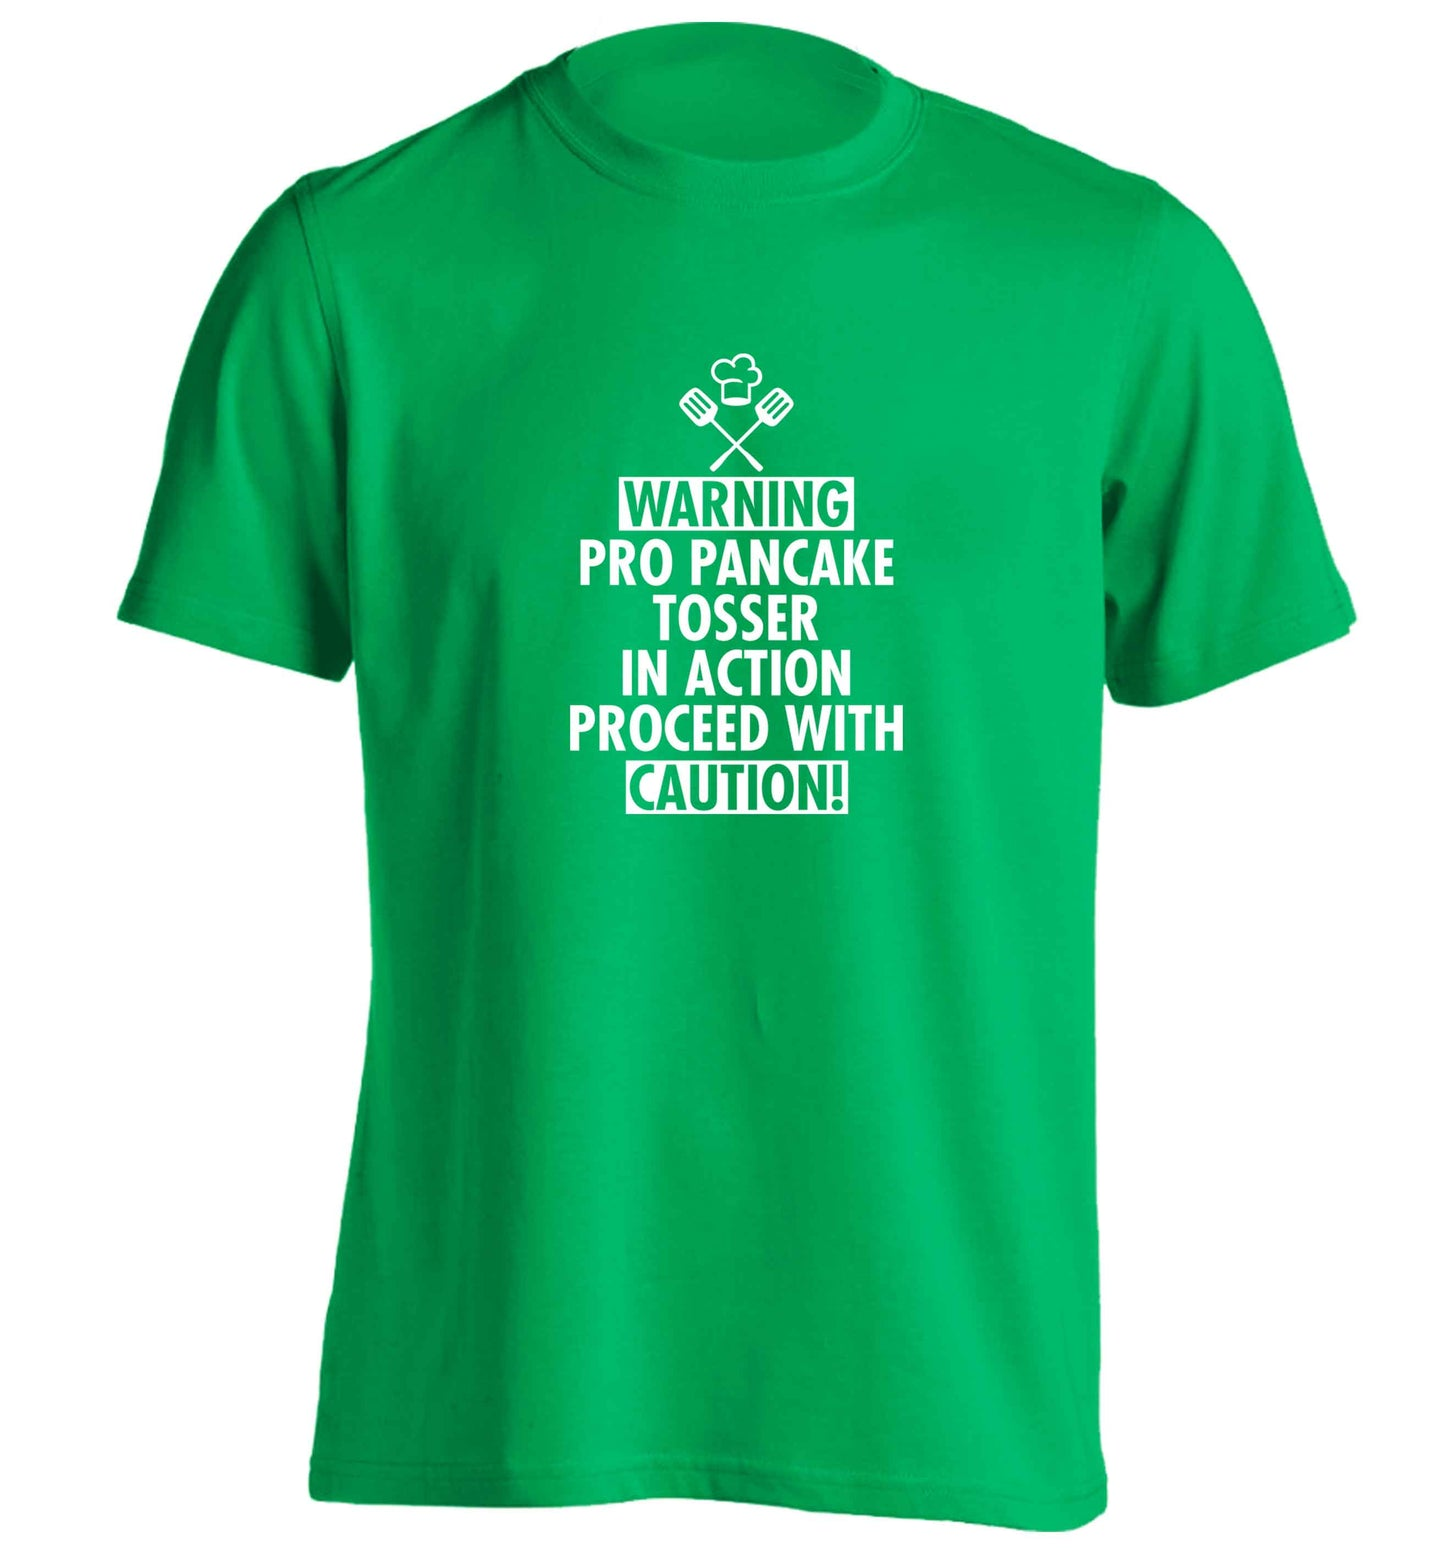 Warning pro pancake tosser in action proceed with caution adults unisex green Tshirt 2XL